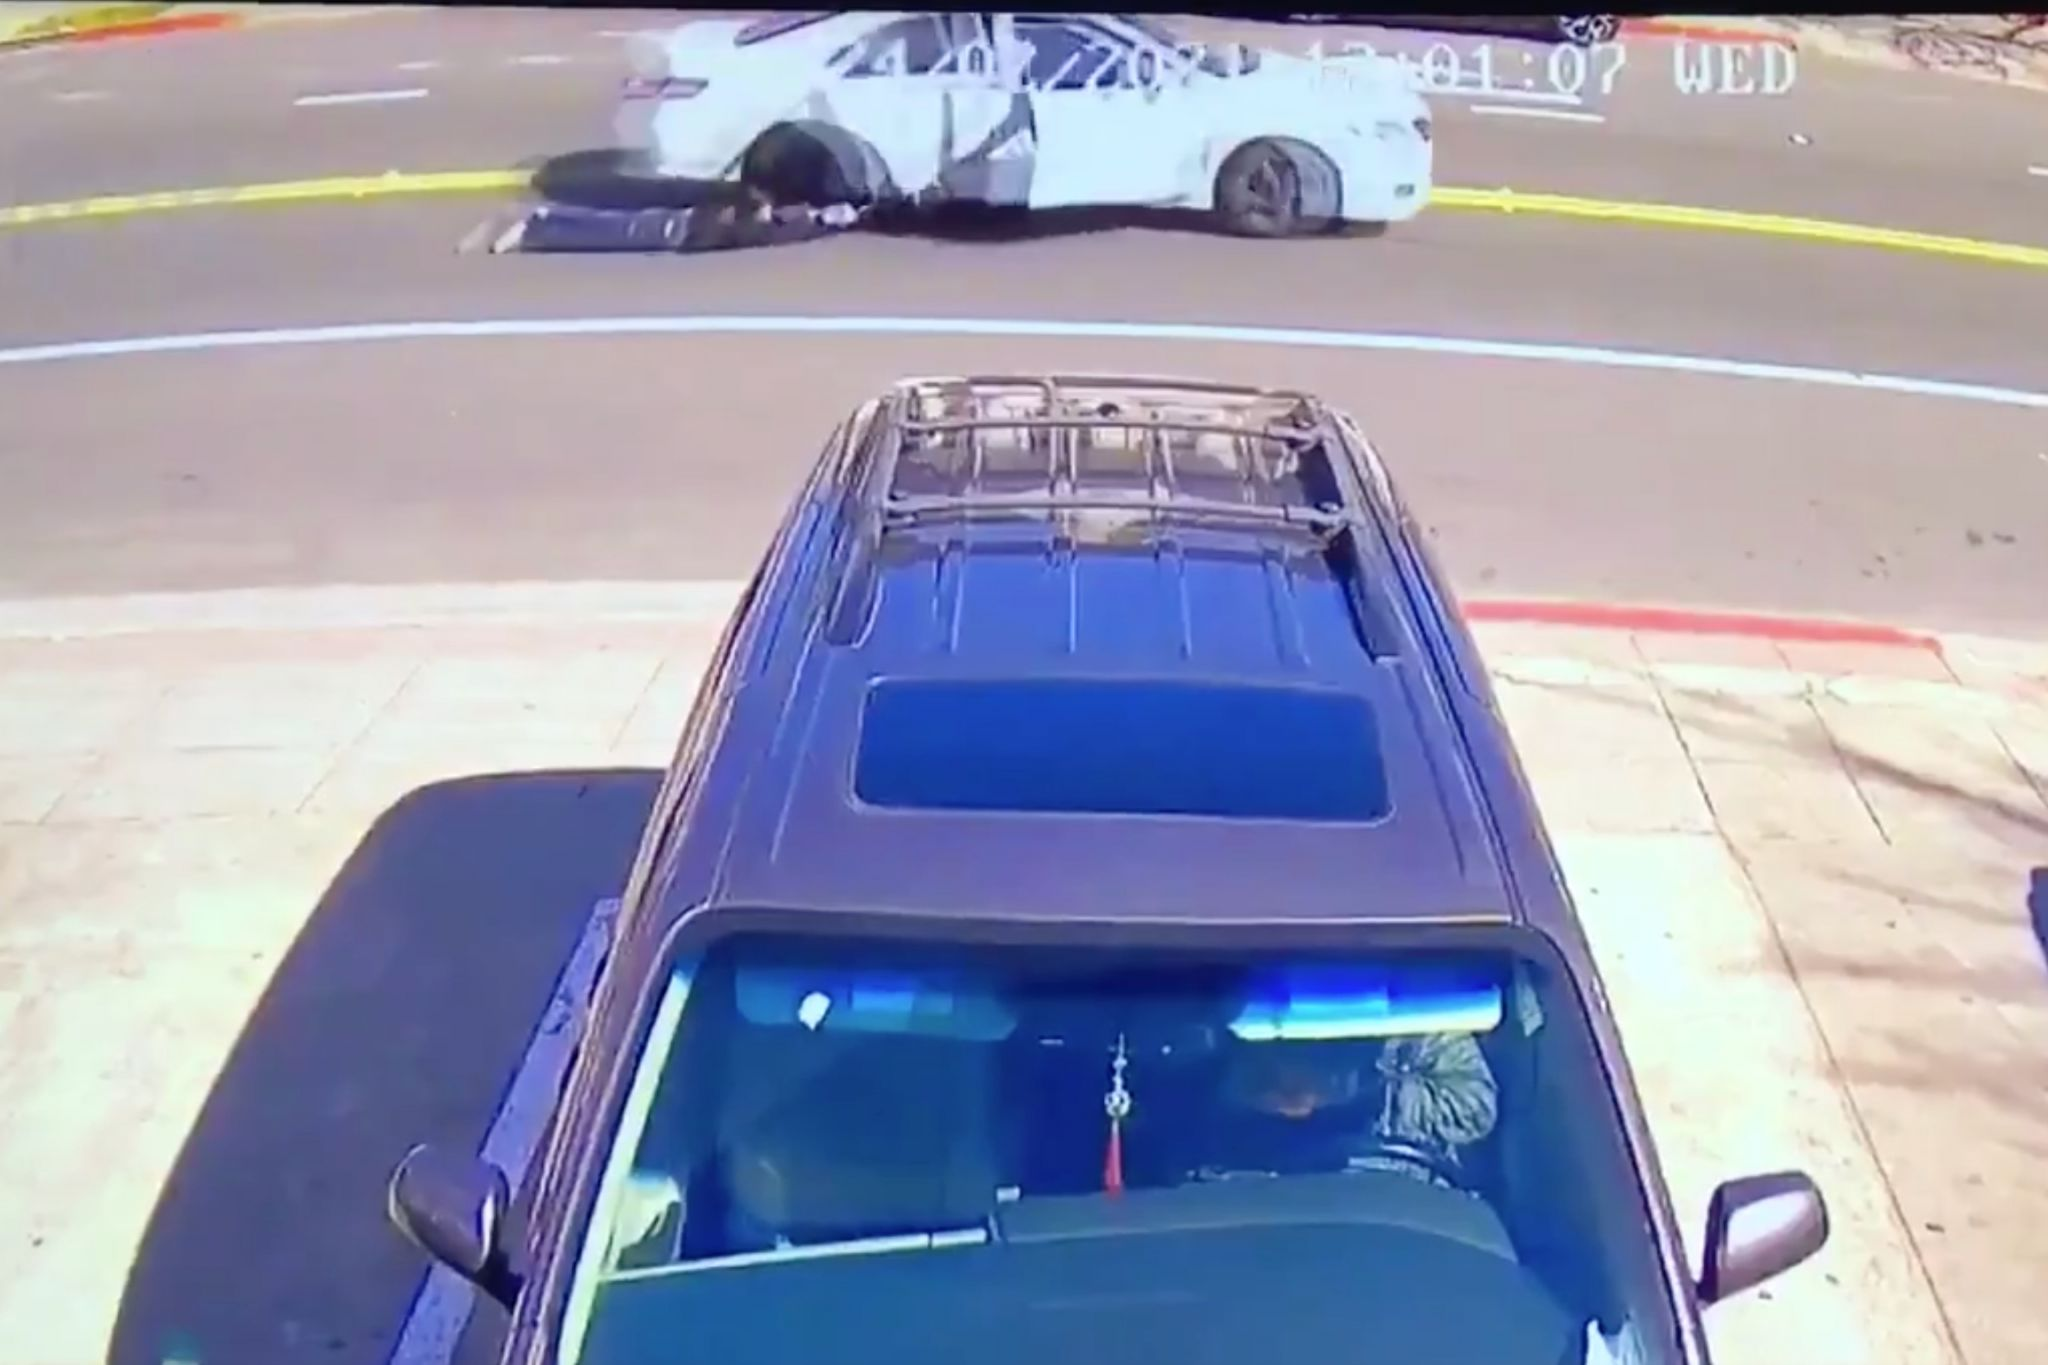 Shocking video shows woman dragged by car in Oakland purse theft